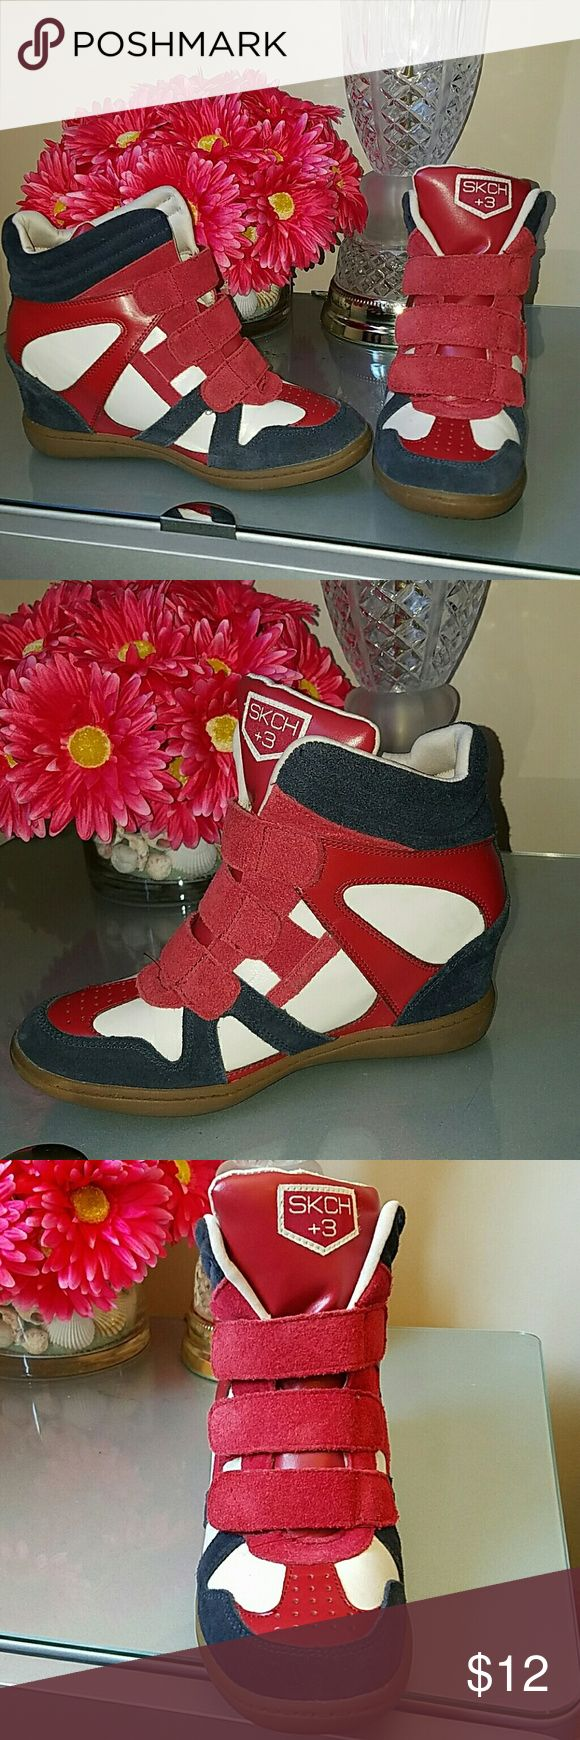 Skechers Wedge Sneakers Size 7.5 These are in great condition, worn a few times and are very well taken care of. The wedge heel is about 2.5/3 inch and is very comfortable to walk in! Velcro straps make it very easy to go in and out of! Skechers Shoes Sneakers